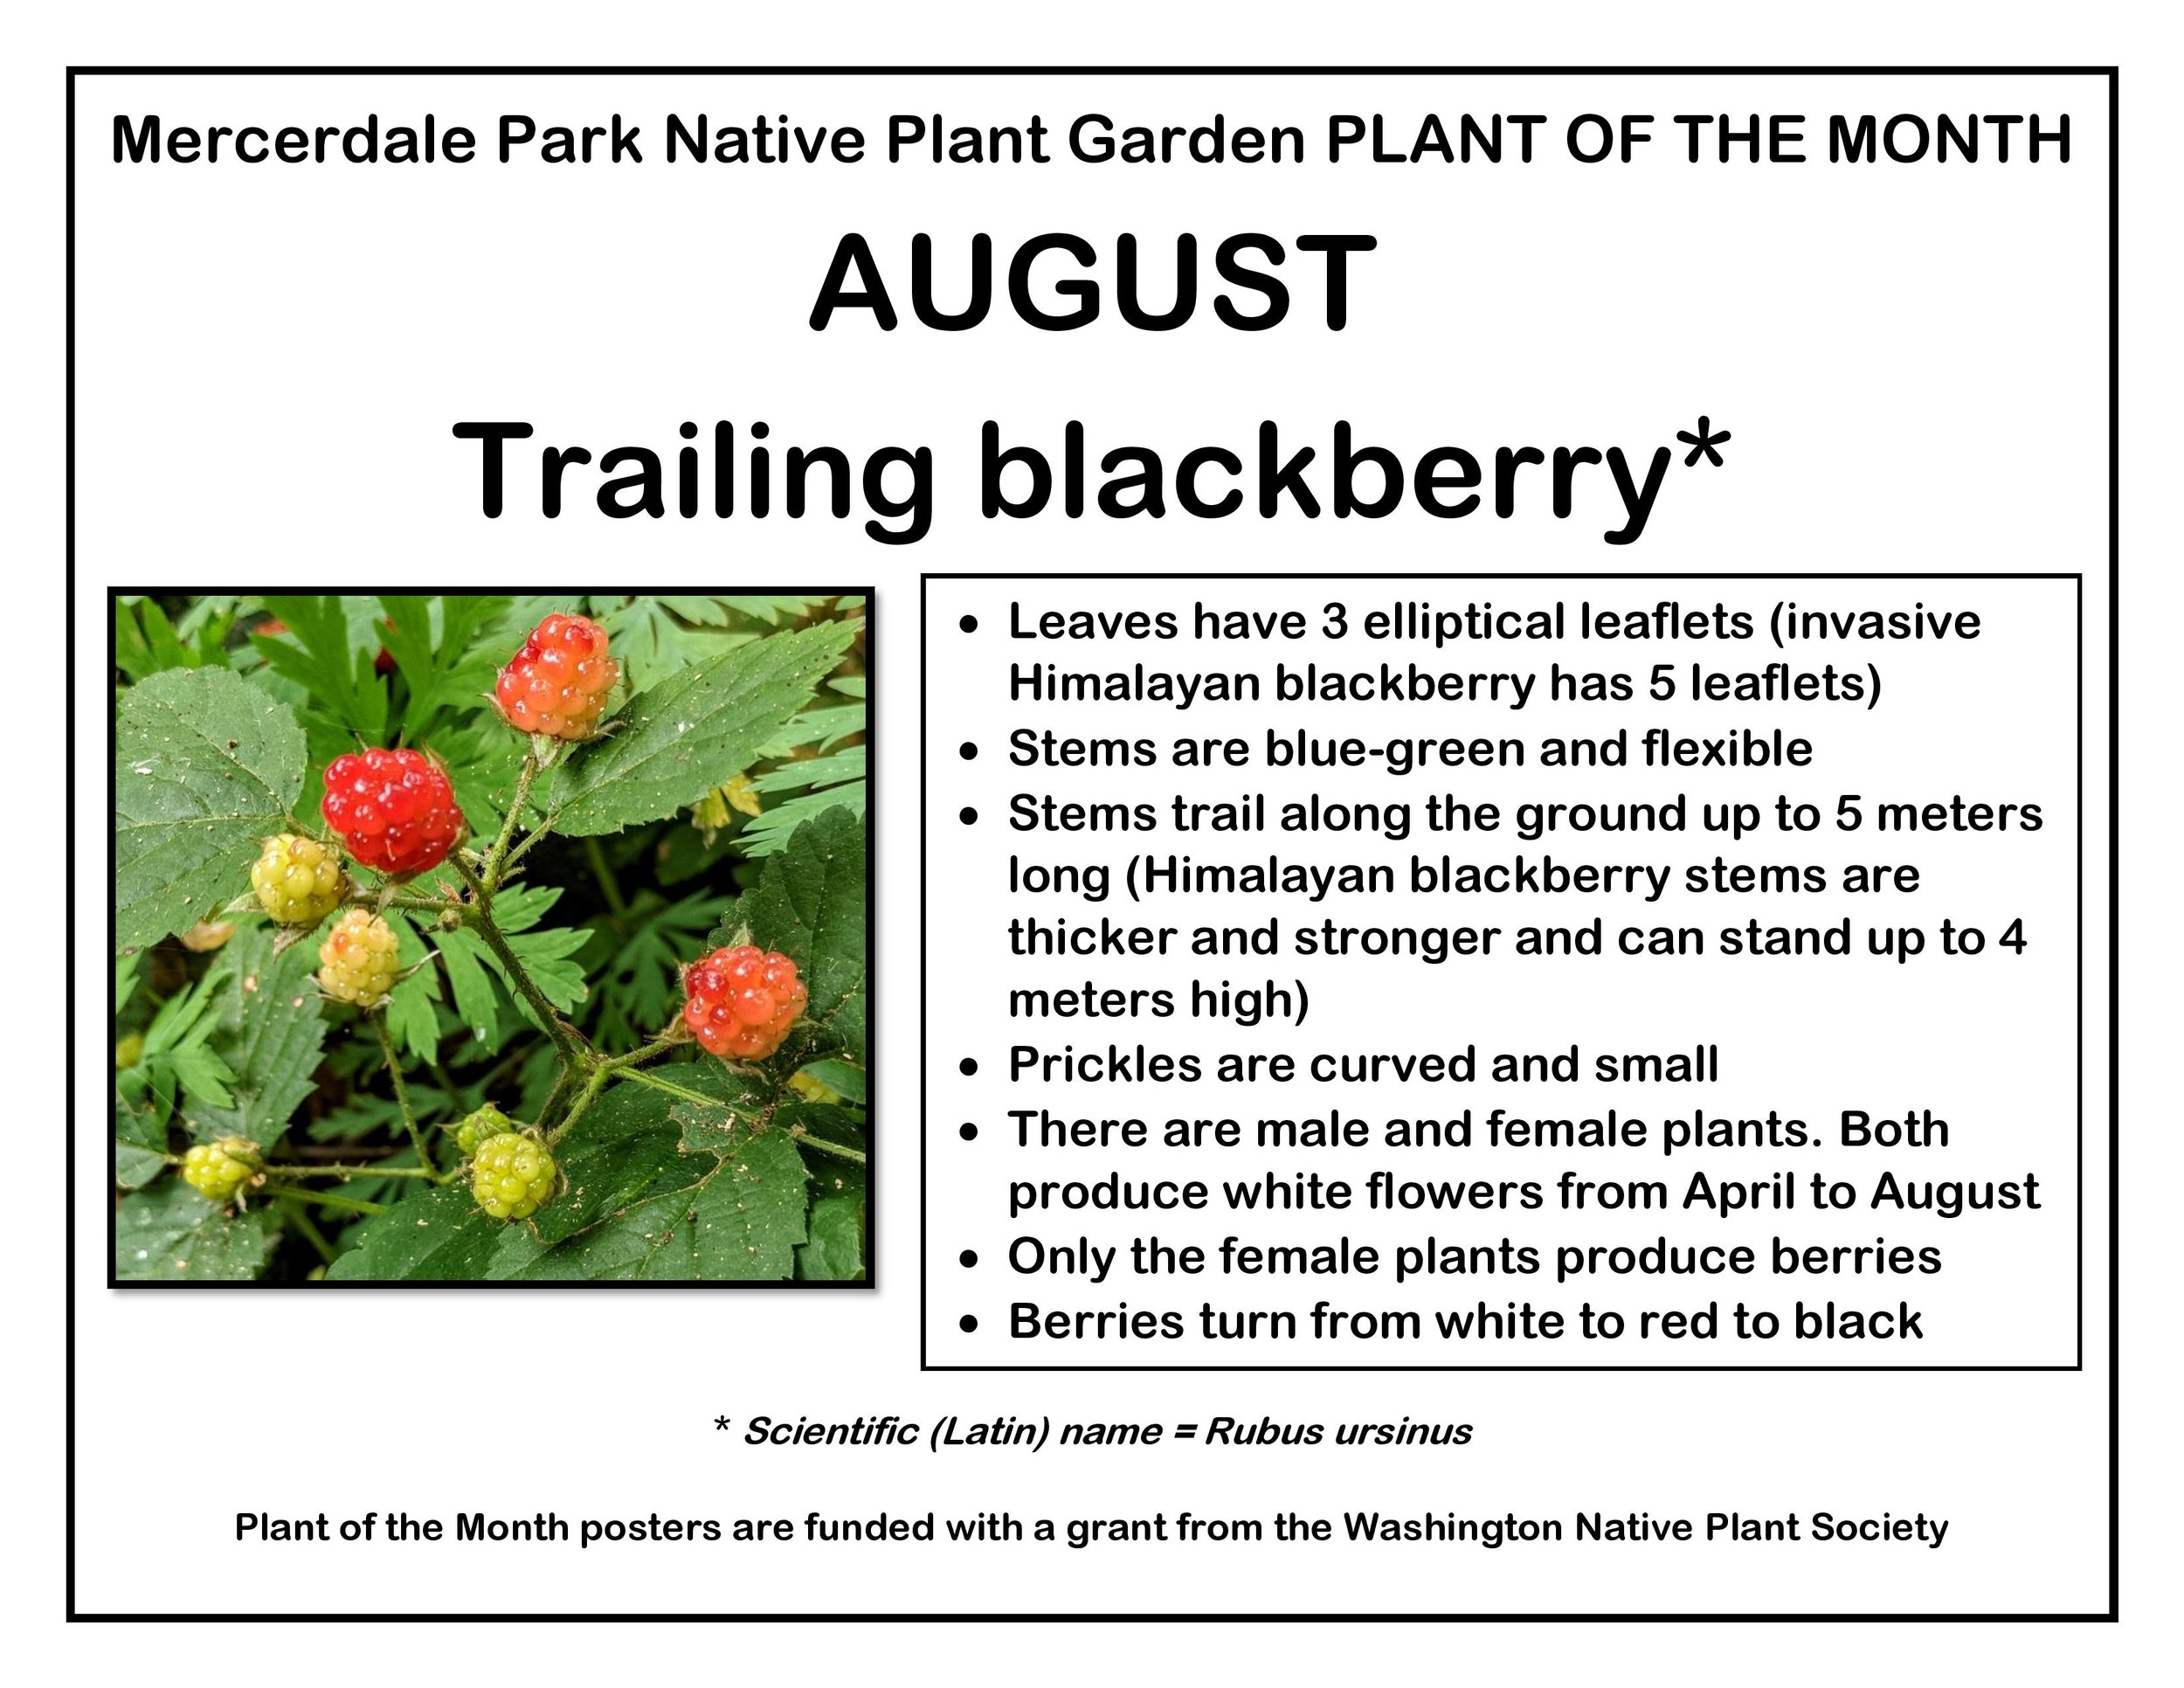 p PLANT OF THE MONTH 8 August Trailing blackberry v2-page-001.jpg